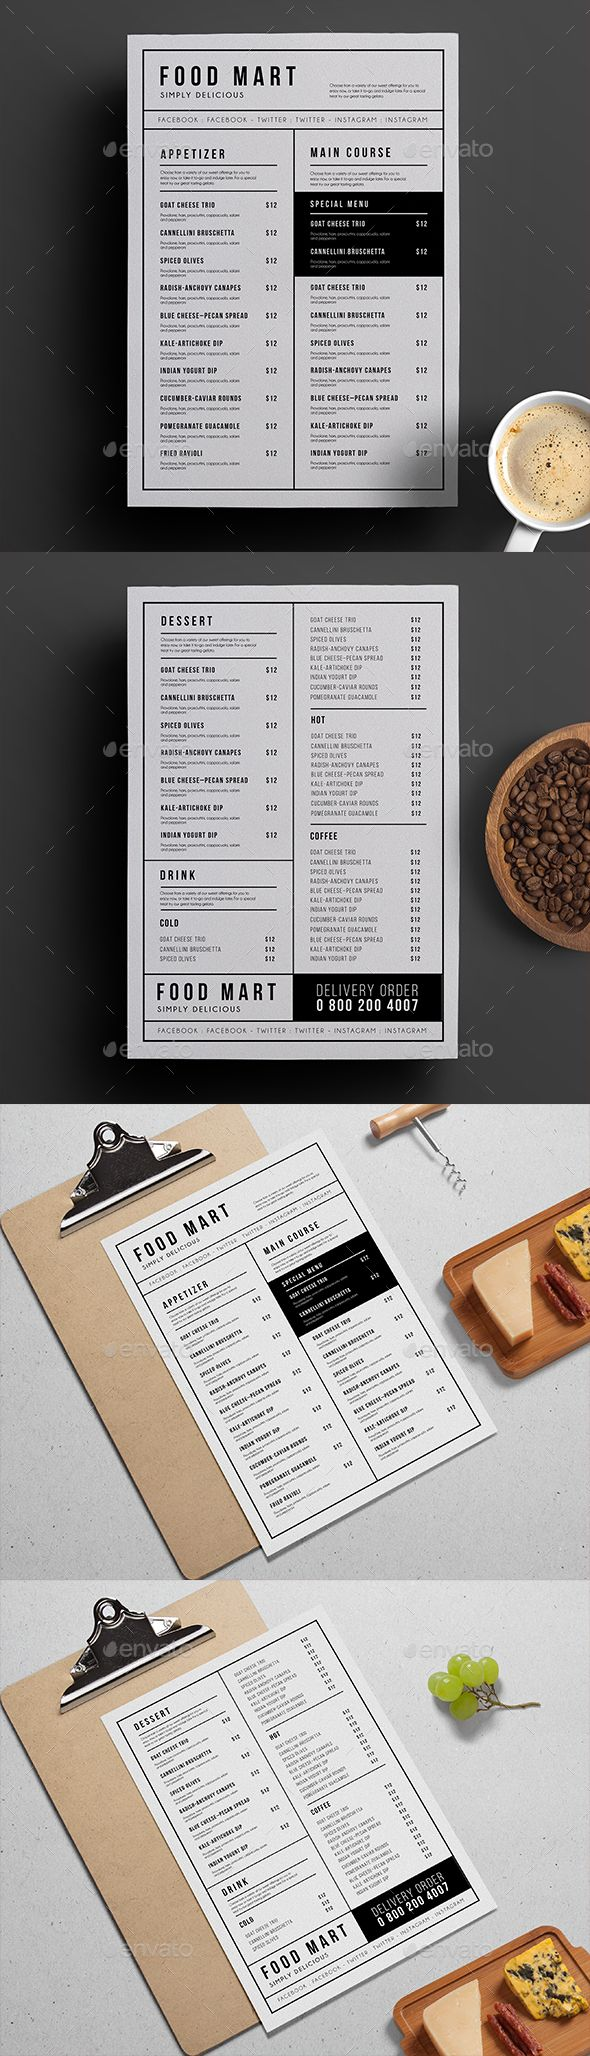 Simple Restaurant Menu 1745 best freelance images